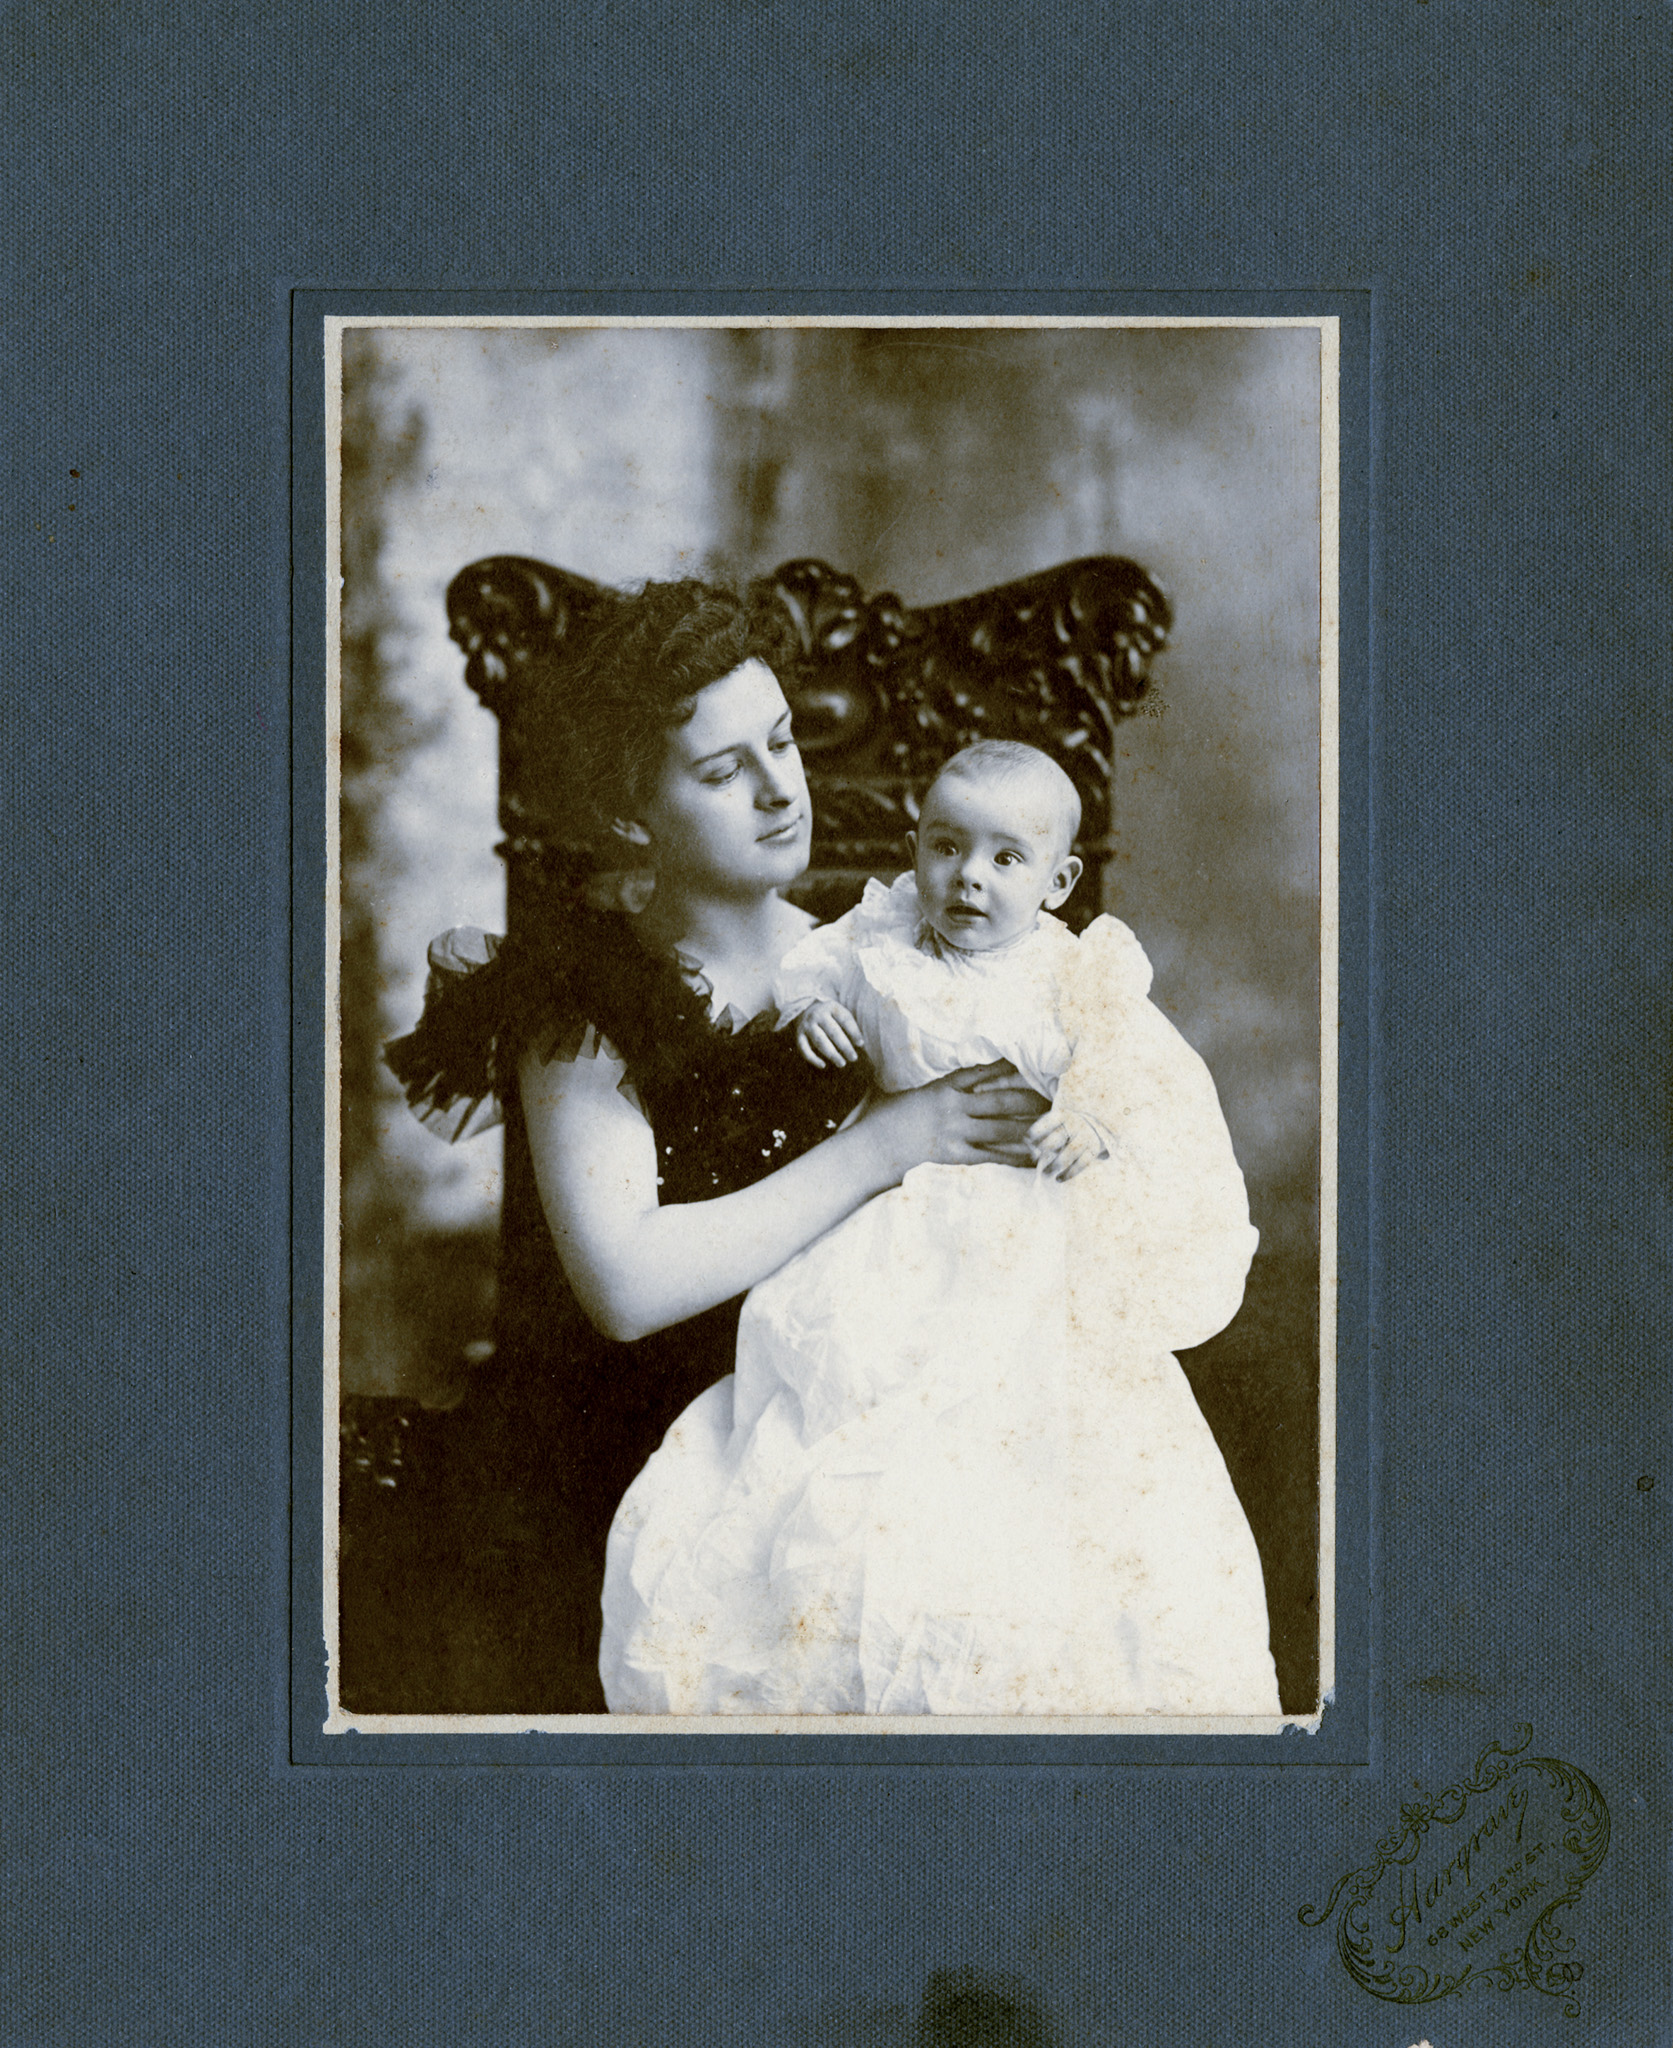 Emma Turner and son, William in 1897